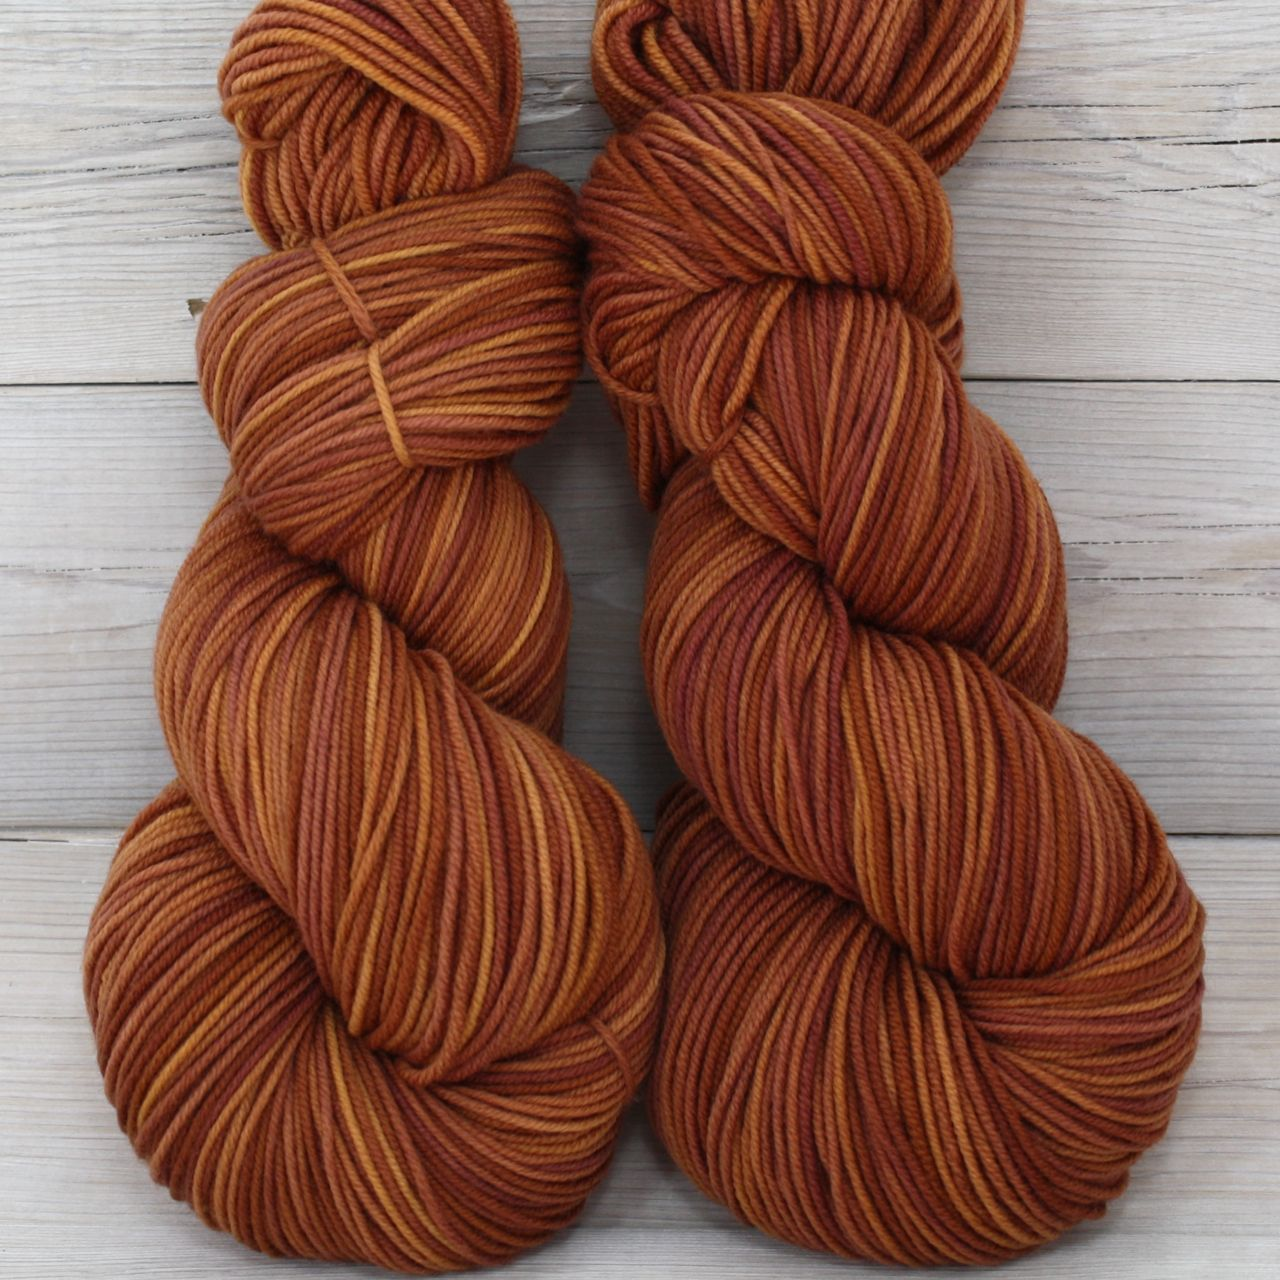 Colorway: Spiced Cider | Dyed to Order Yarn